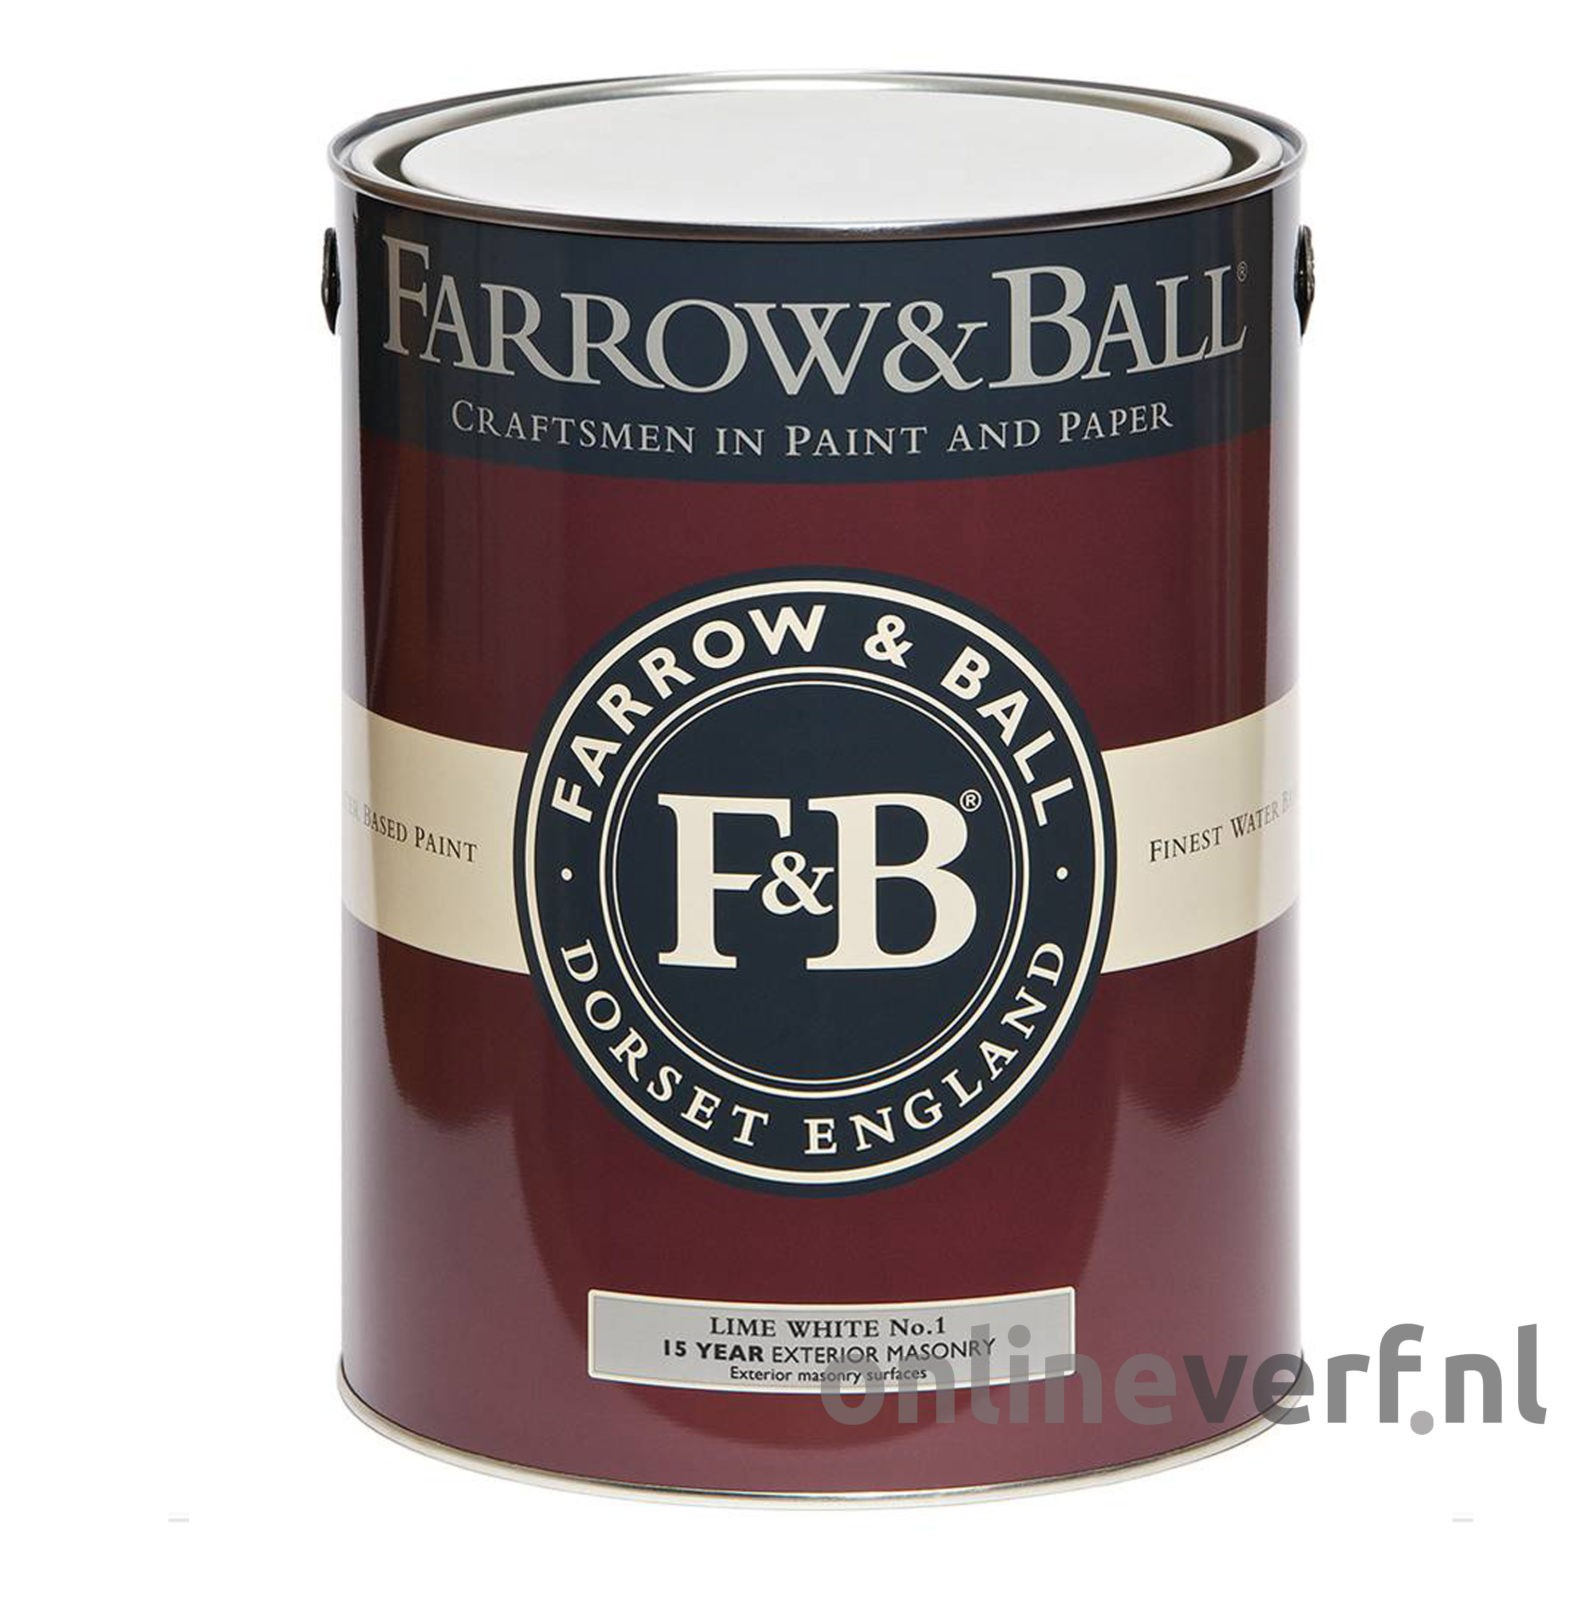 Farrow & Ball Exterior Masonry Paint